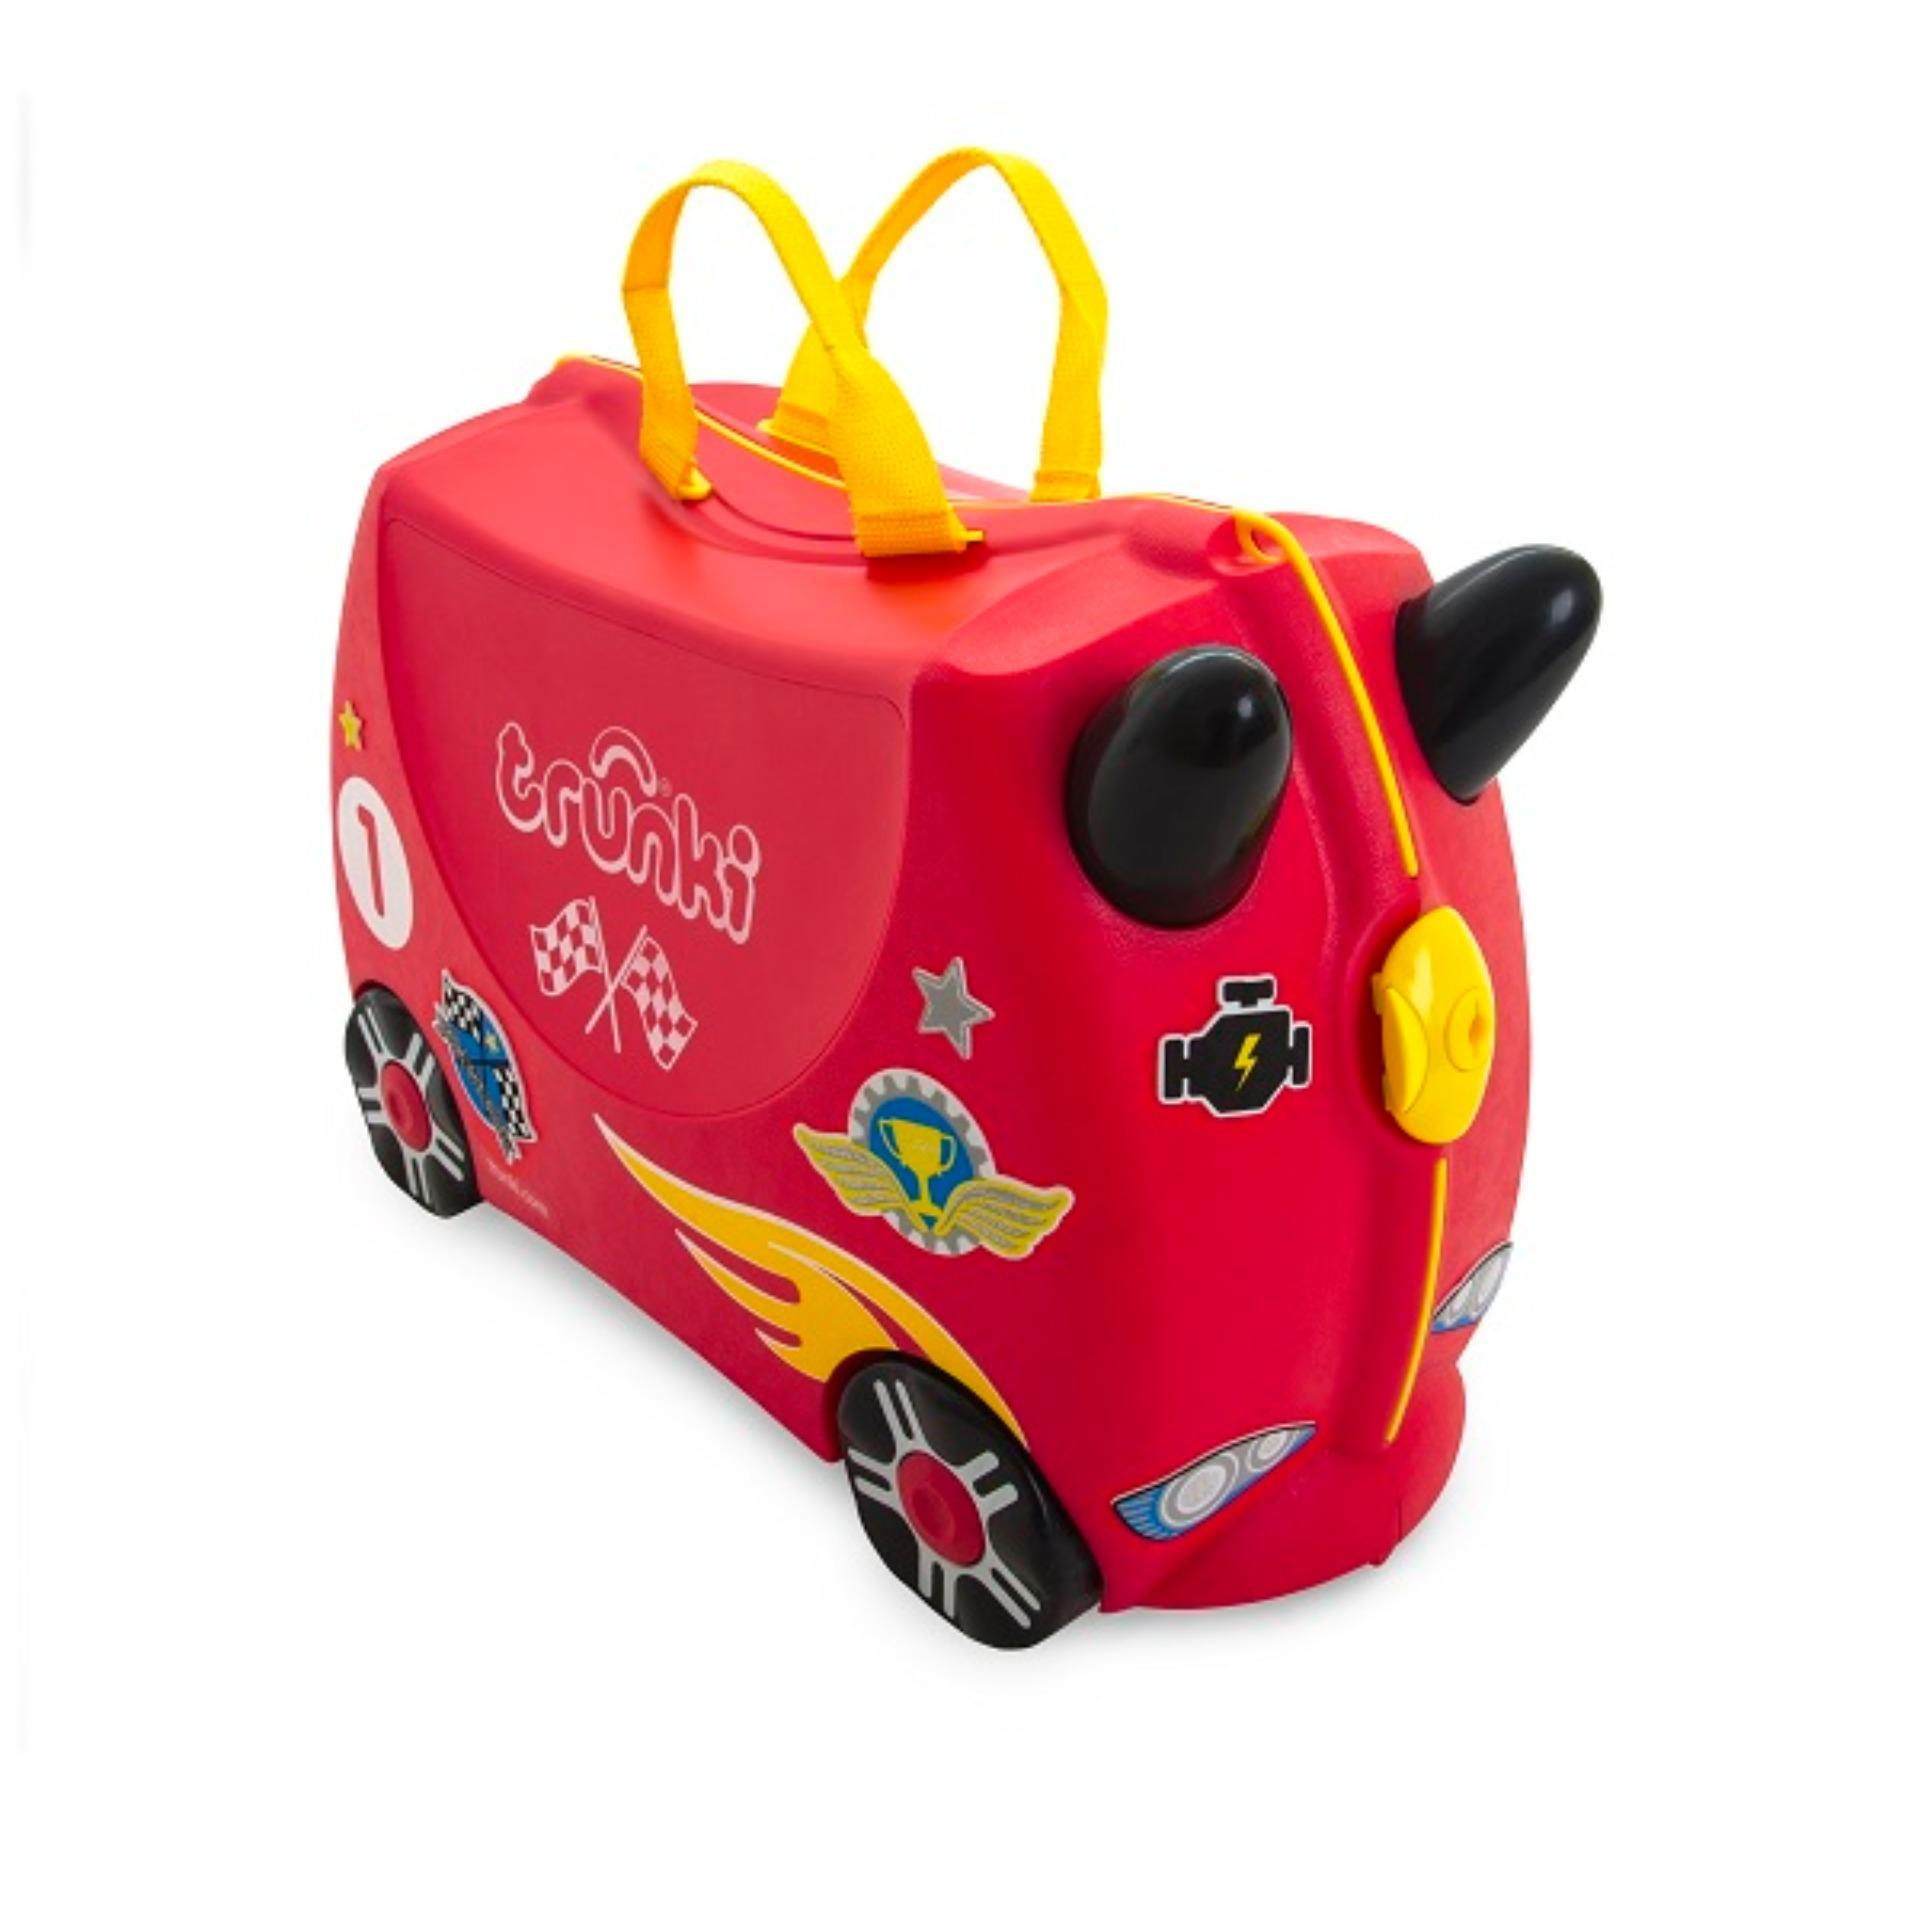 Vali trunki Rocco Car – New 2017